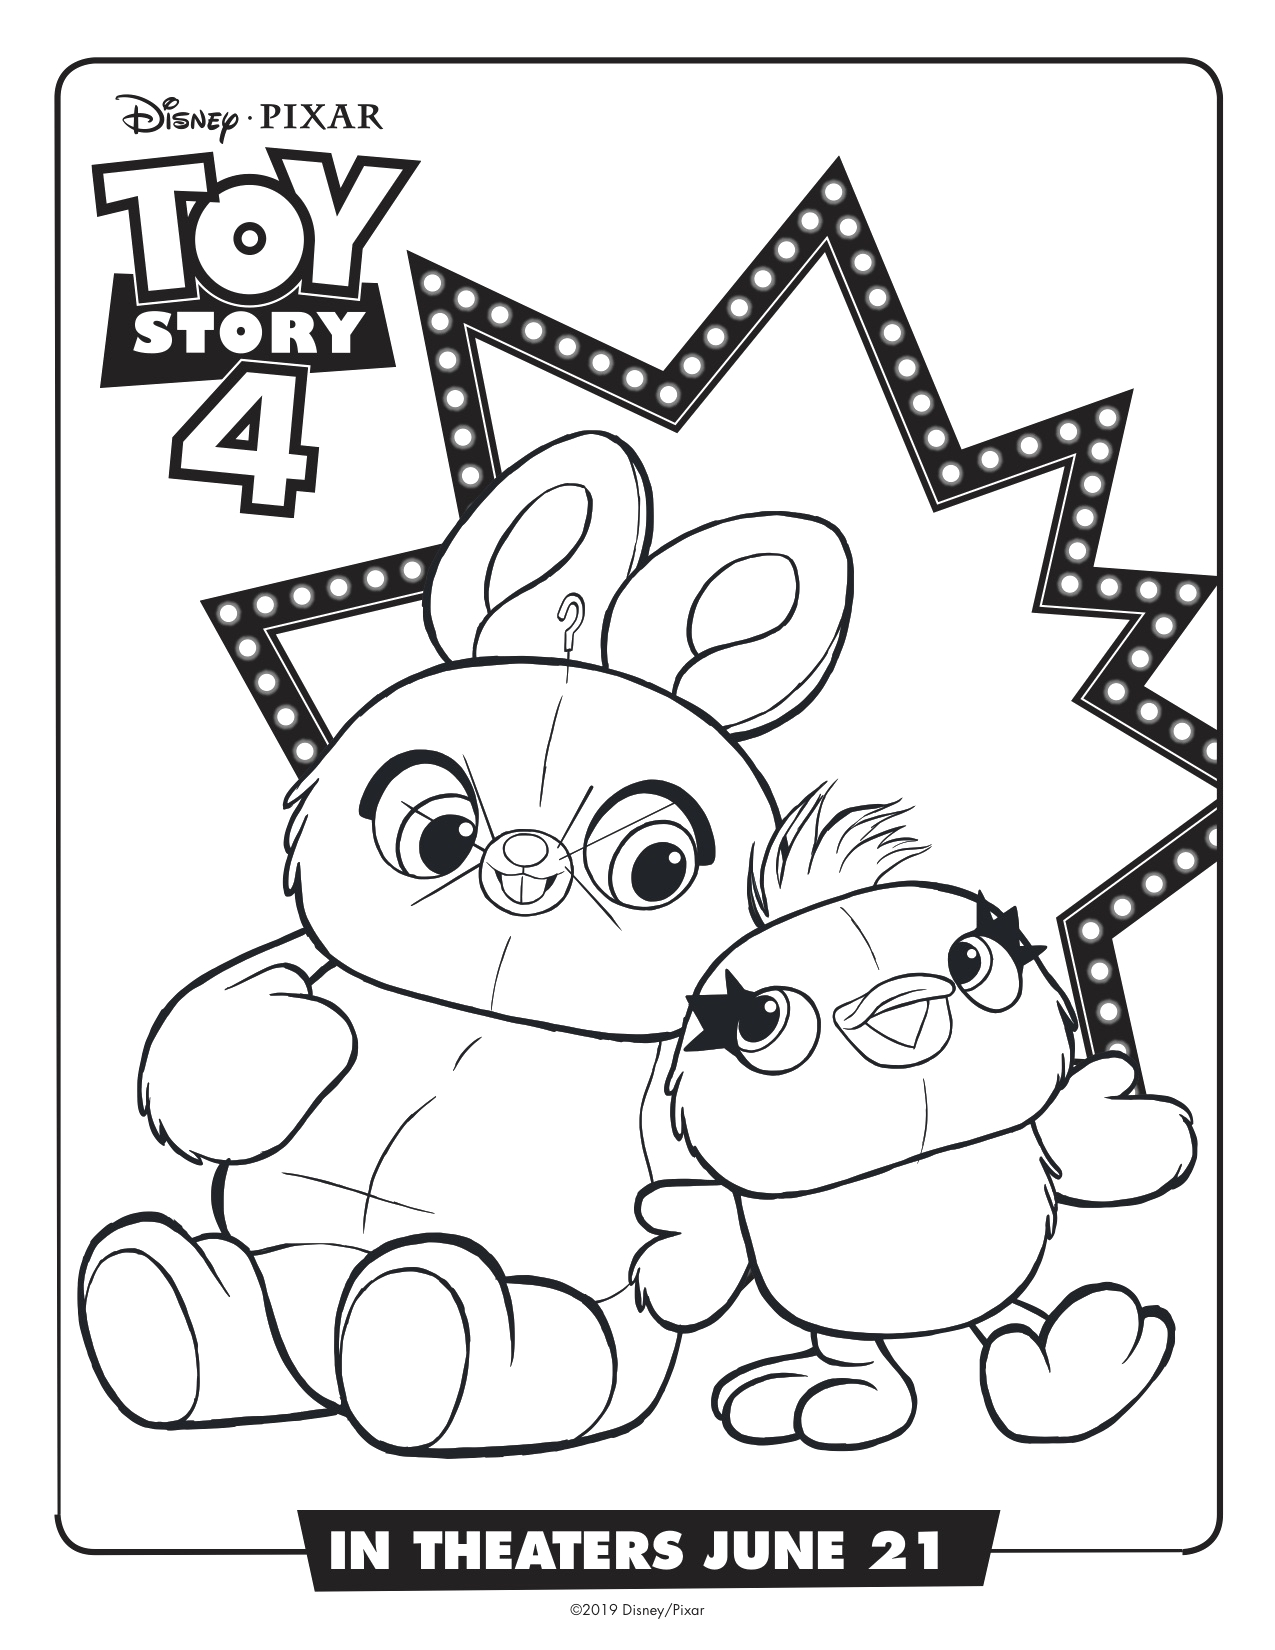 Toy Story 4 Ducky and Bunny Coloring Pages toy Story 4 Ducky and Bunny Printable Coloring Page Simply